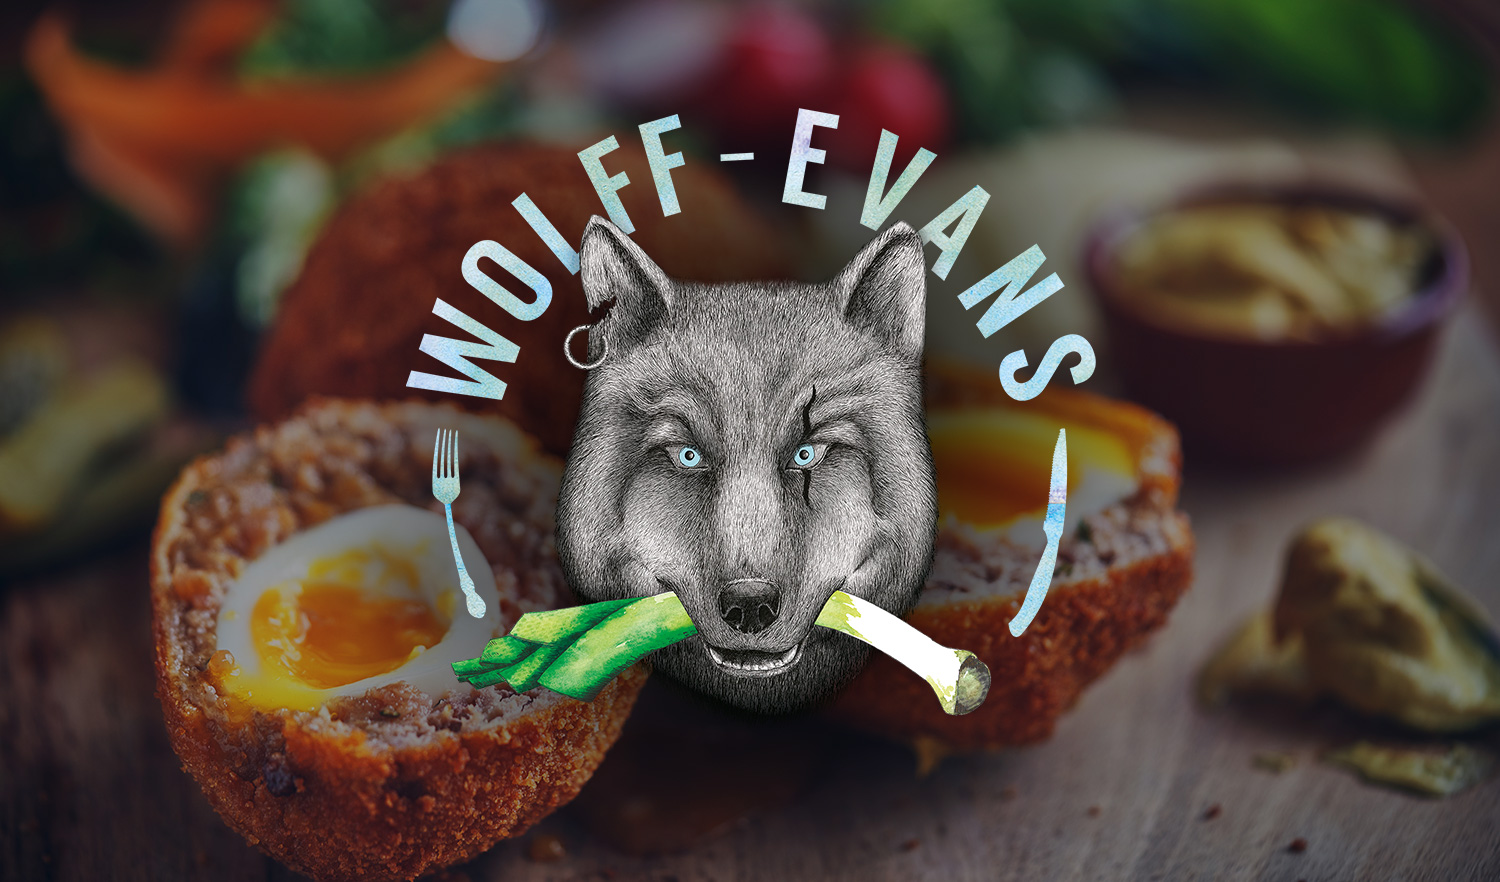 Wolff-Evans scotch eggs logo